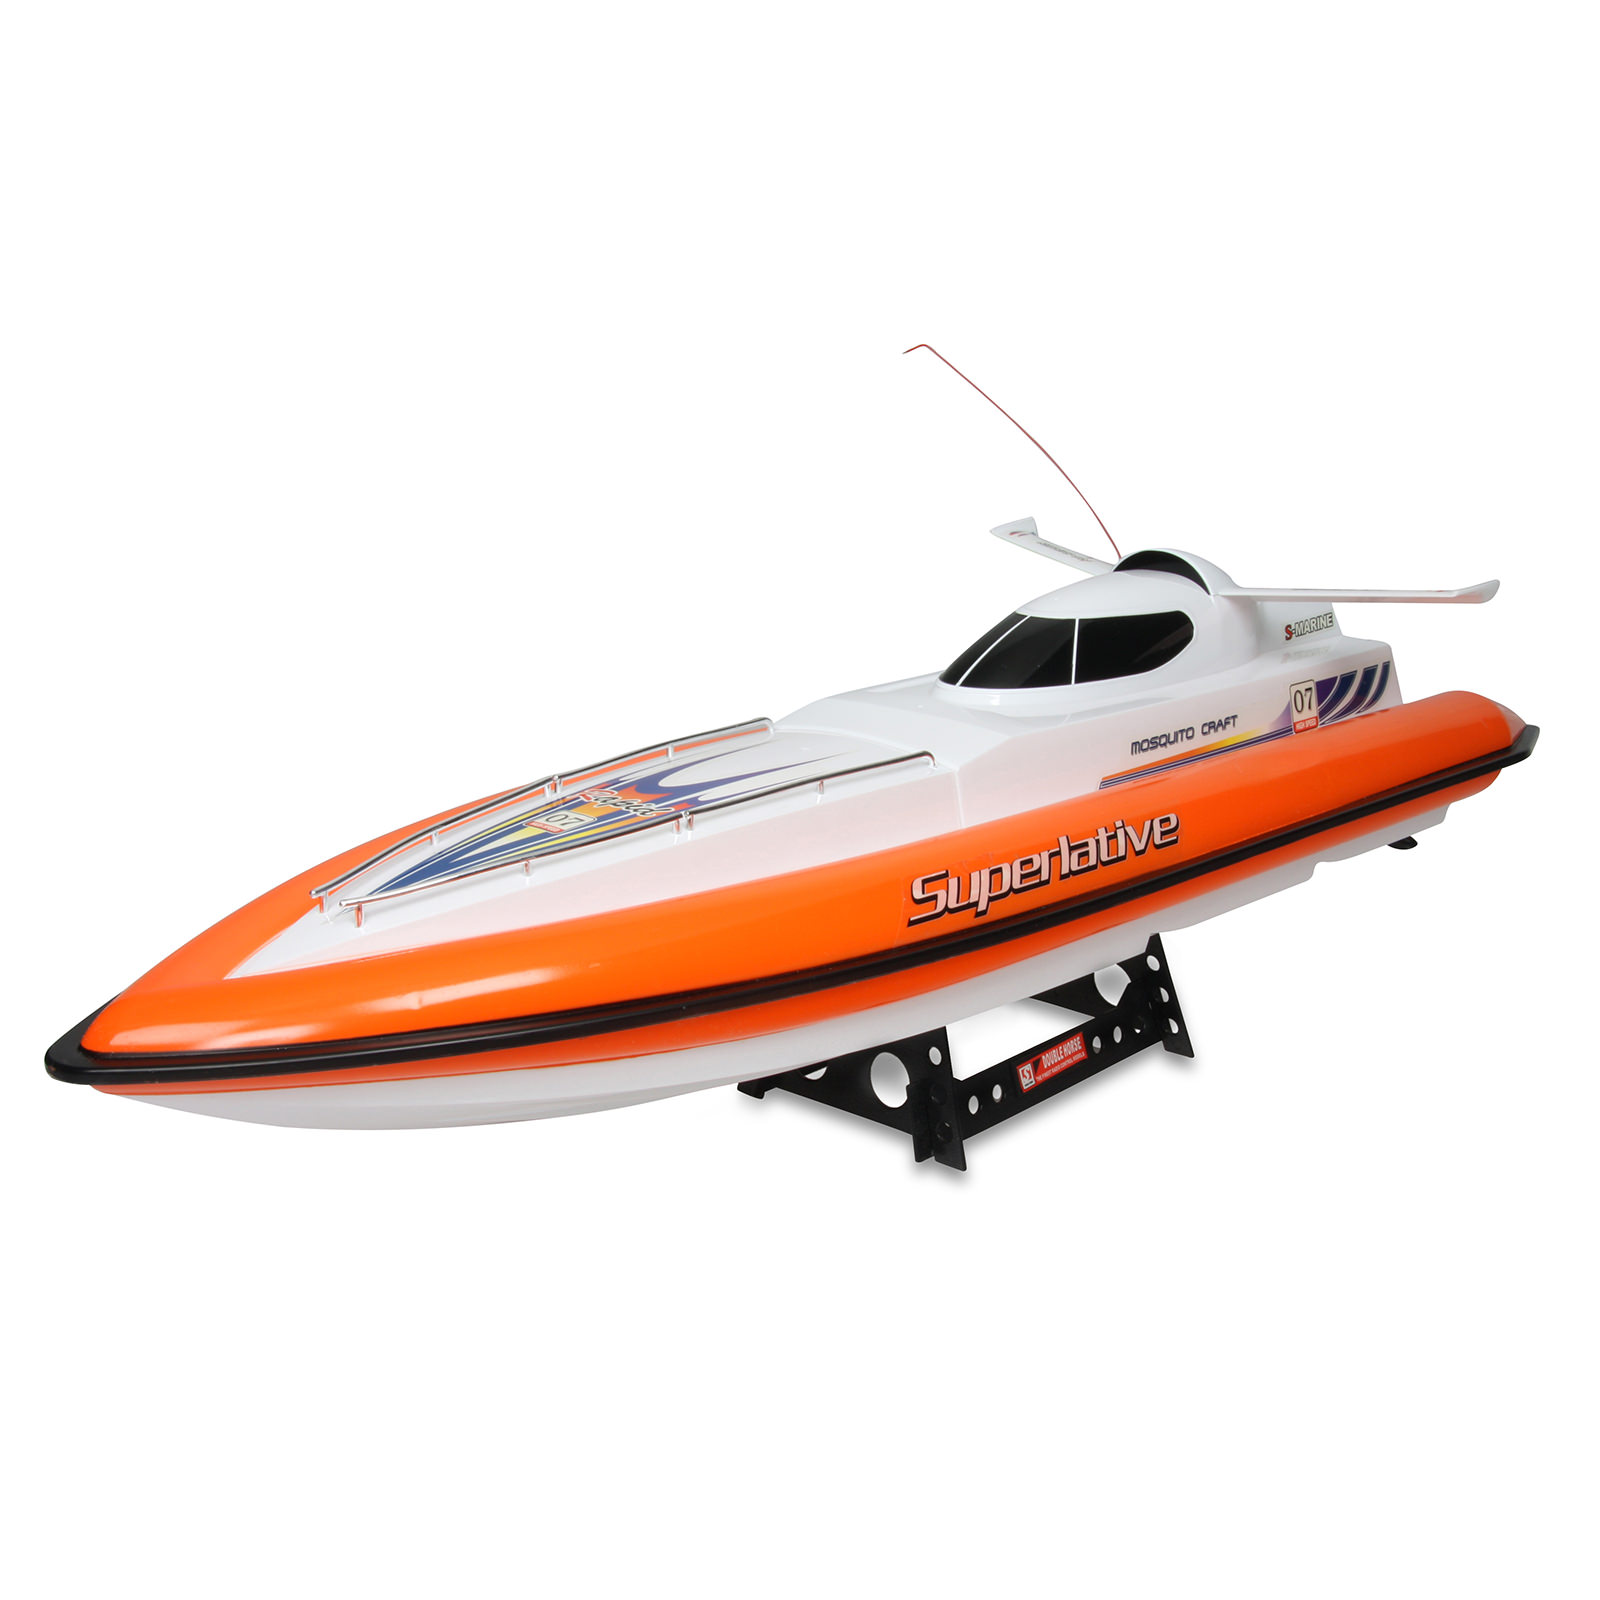 Double Horse 7007 Superlative Rc Speed Boat At Hobby Warehouse